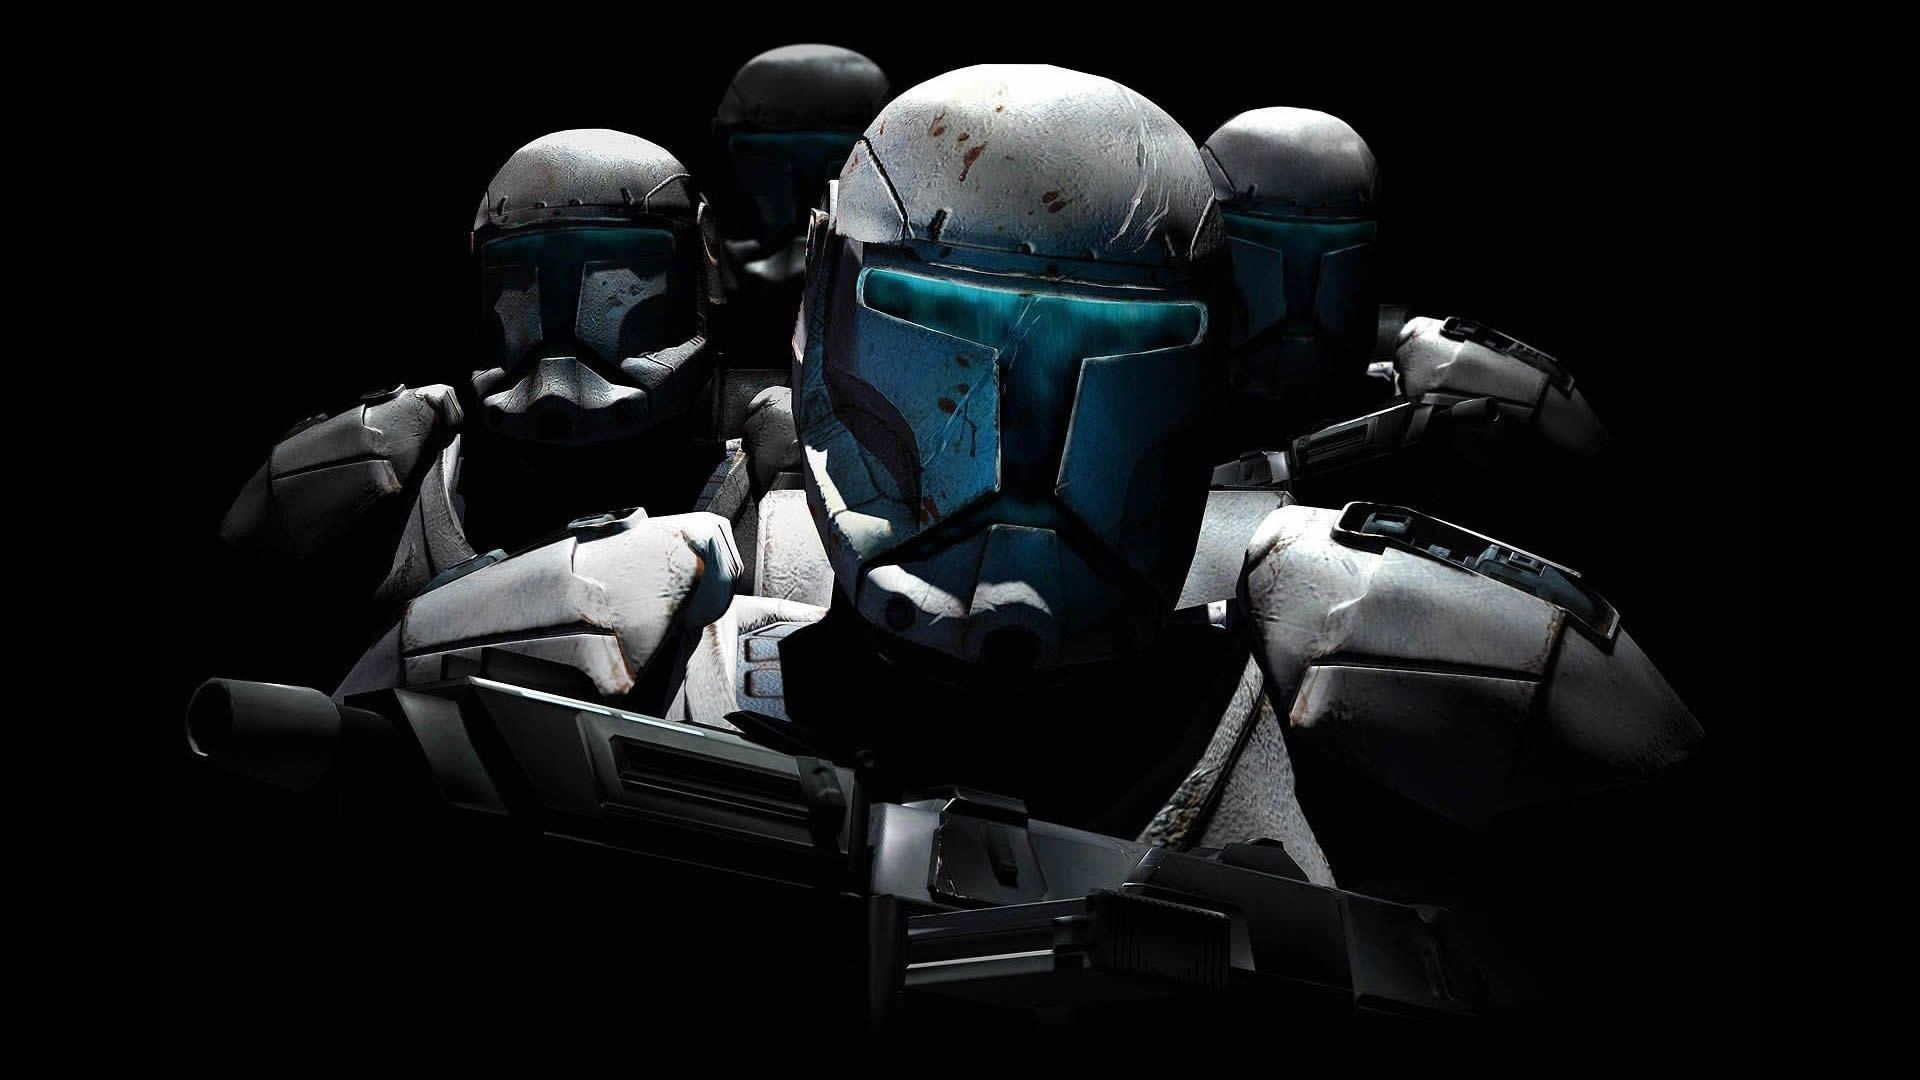 Star Wars Wallpapers High Quality …